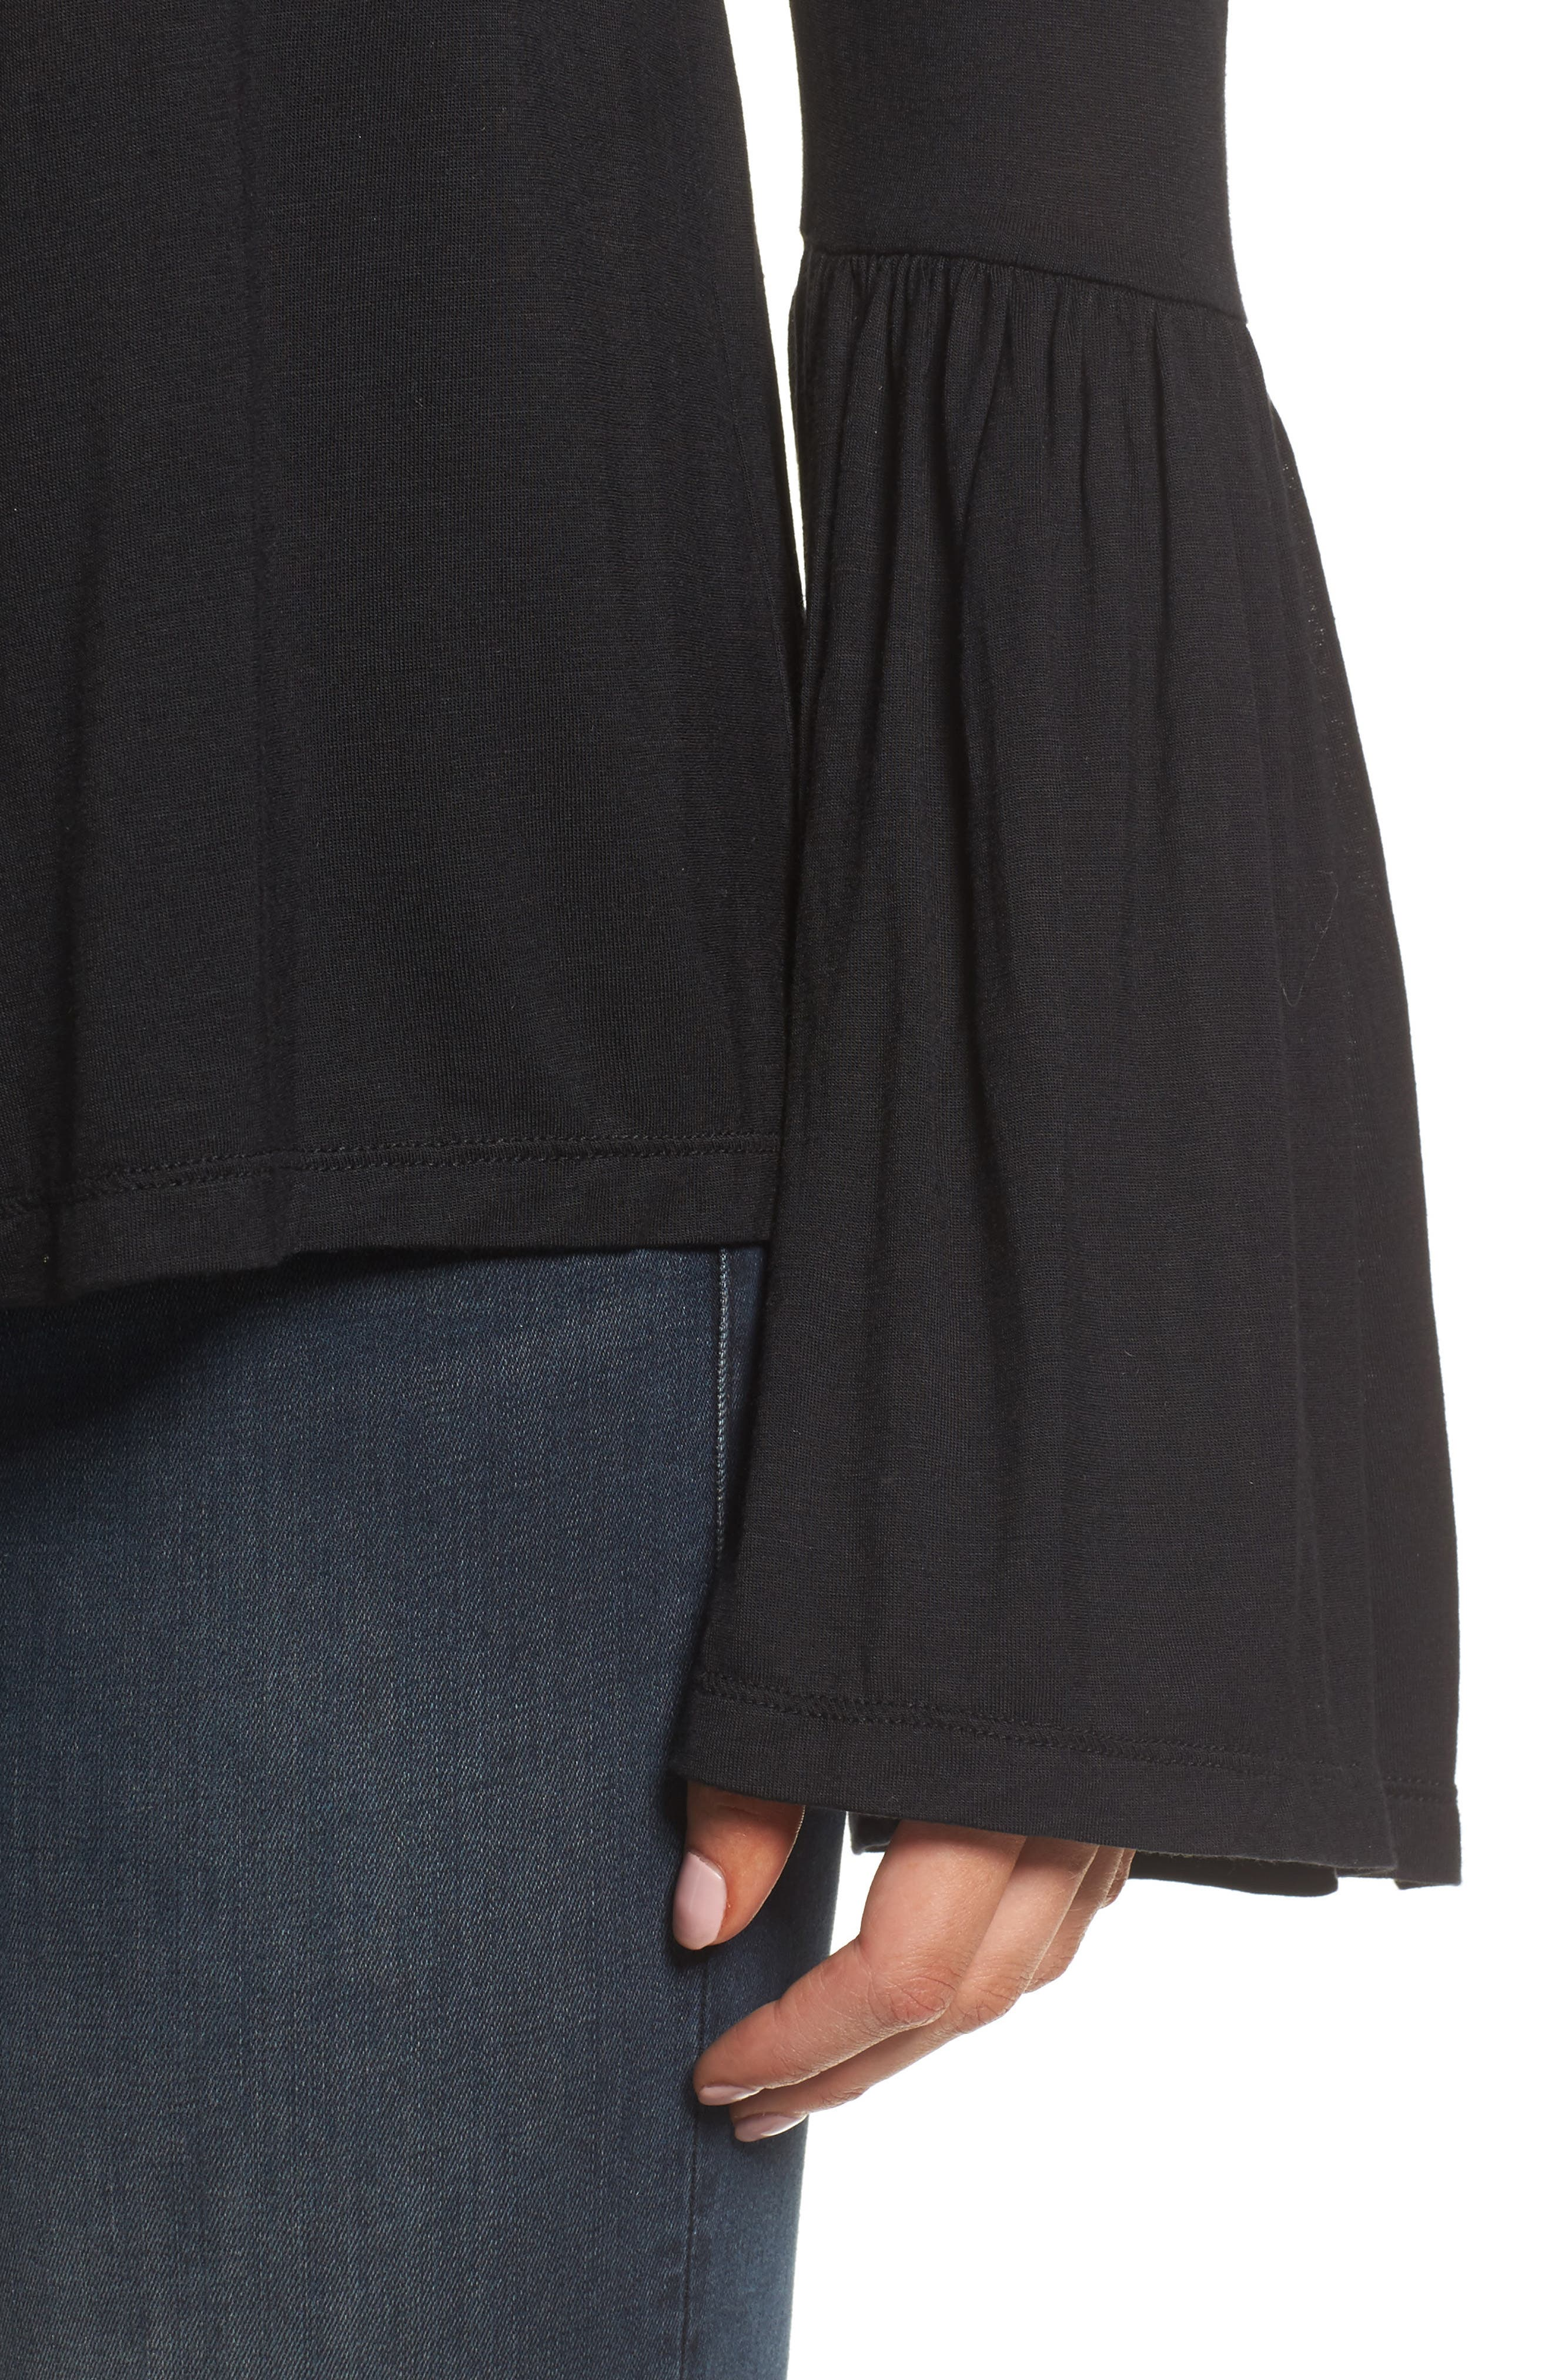 Luck Off the Shoulder Top,                             Alternate thumbnail 4, color,